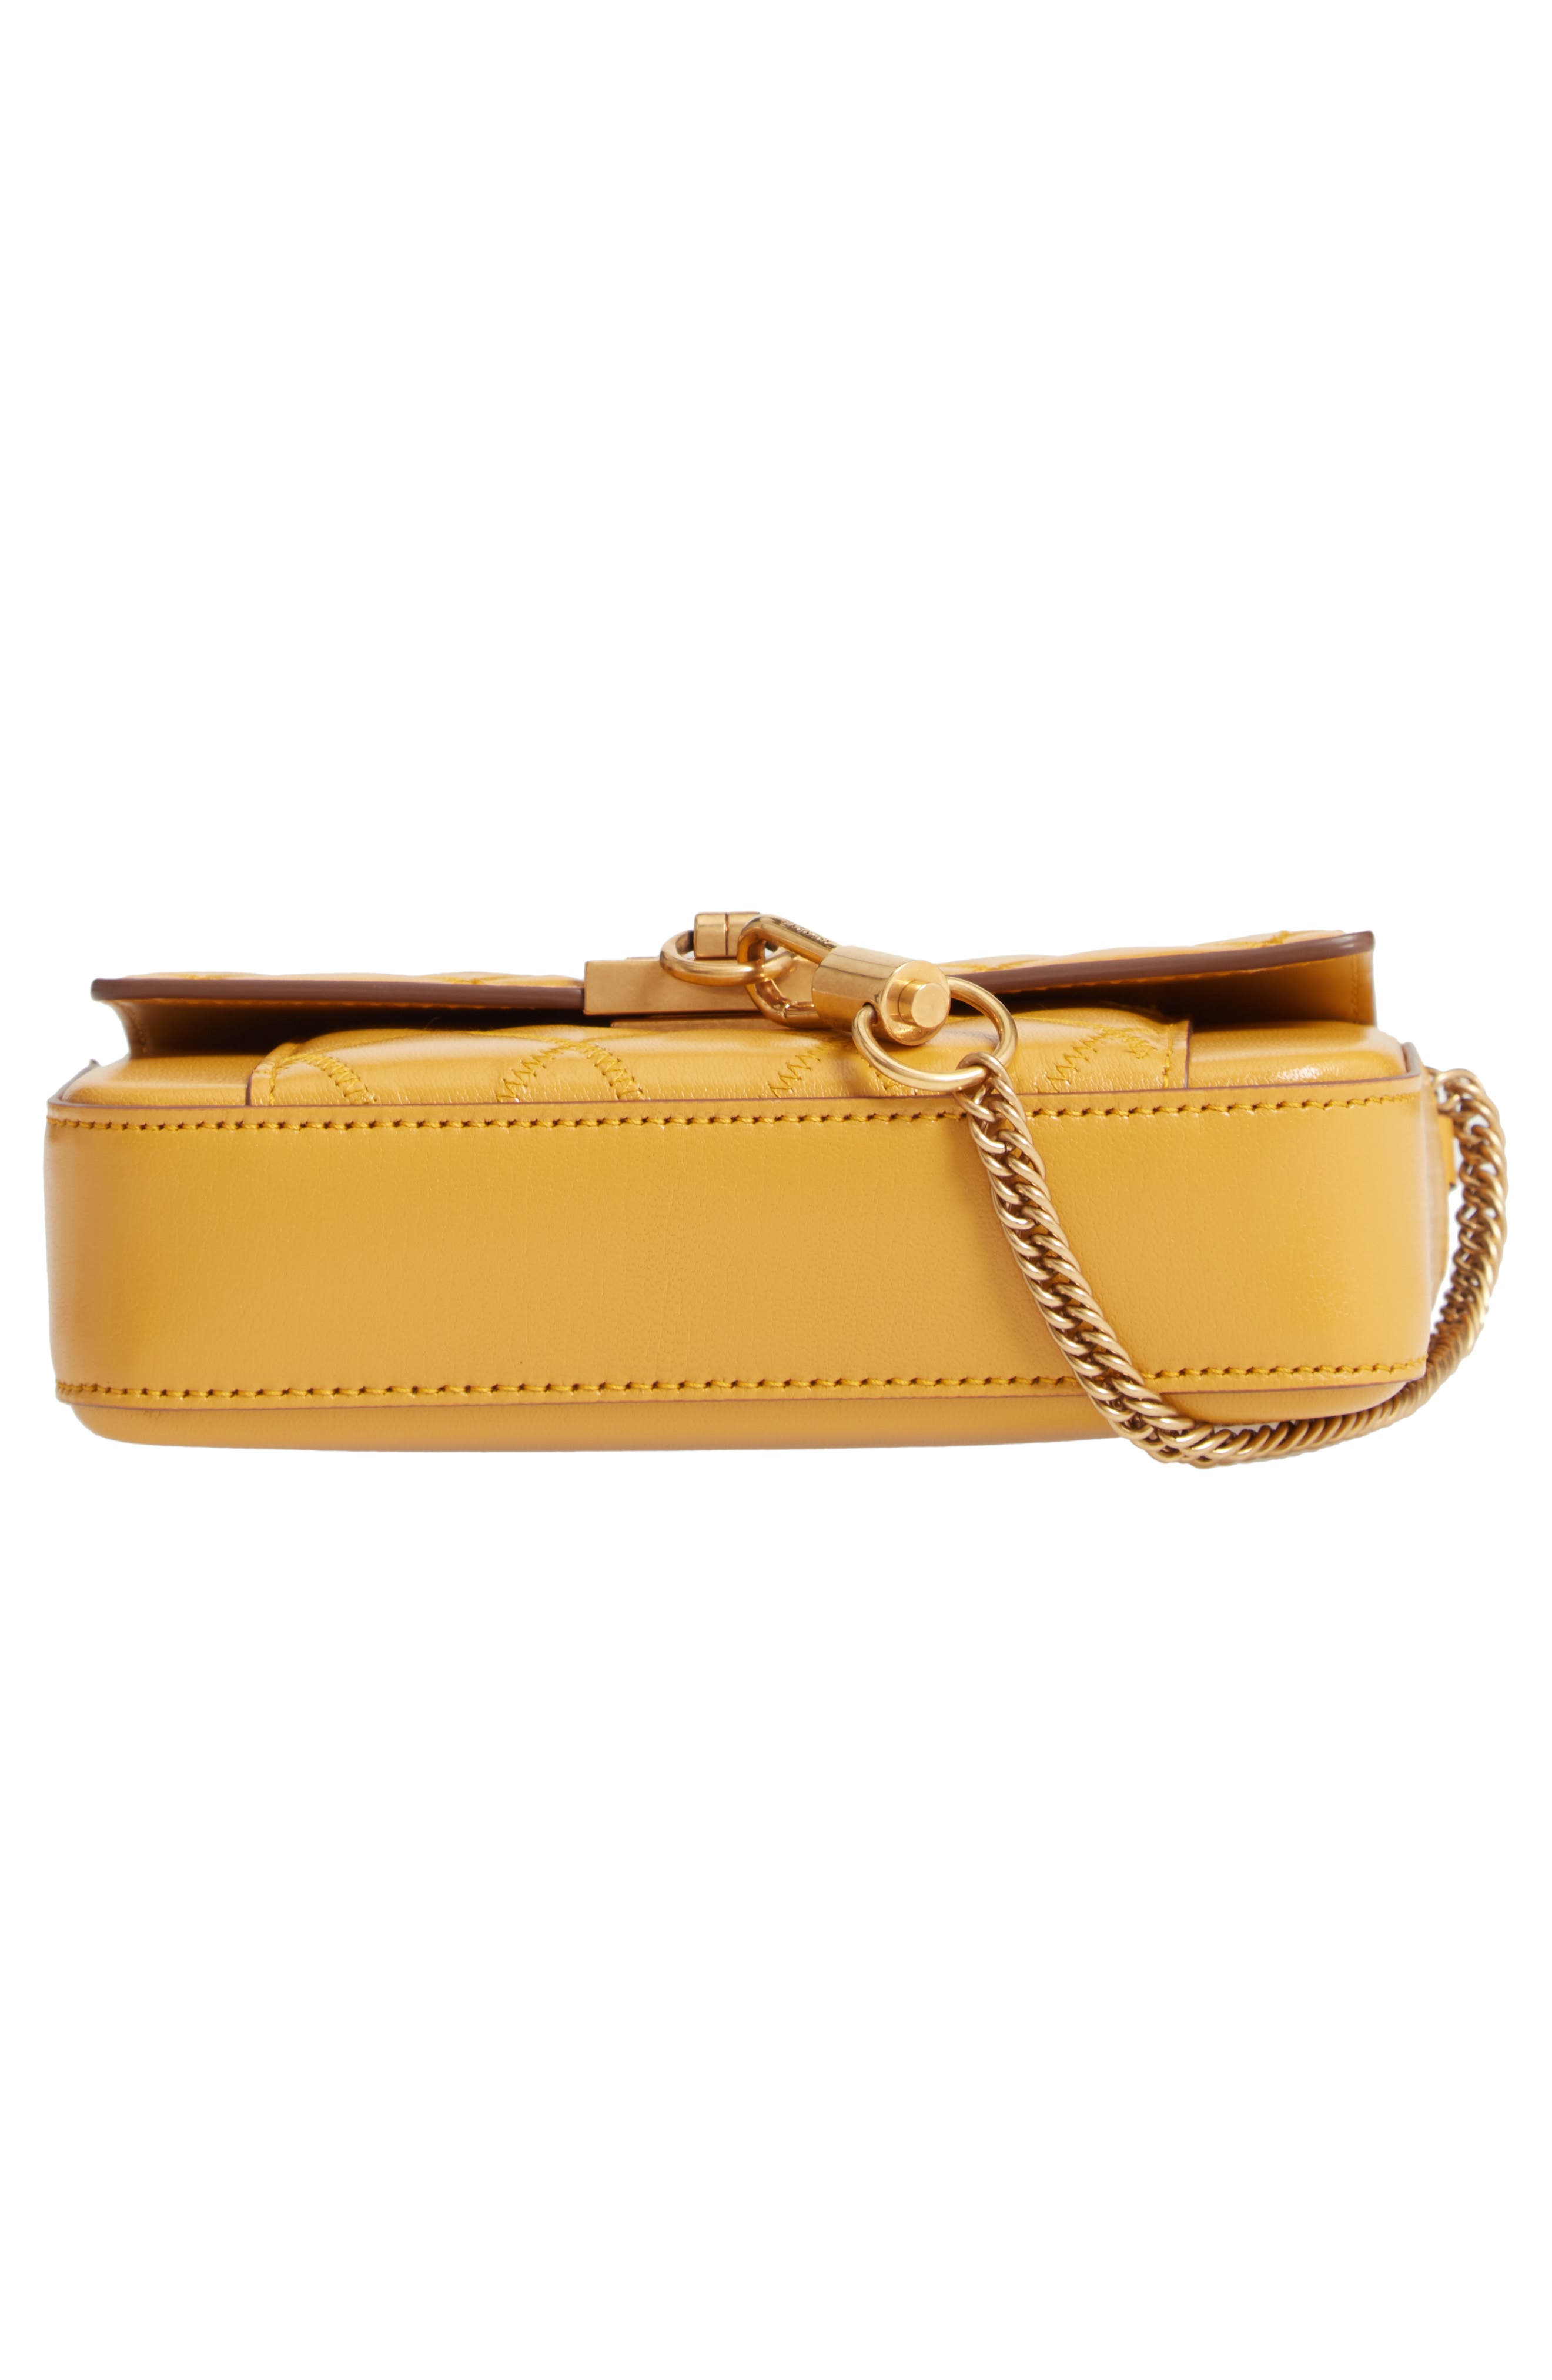 Mini Pocket Quilted Convertible Leather Bag,                             Alternate thumbnail 7, color,                             GOLDEN